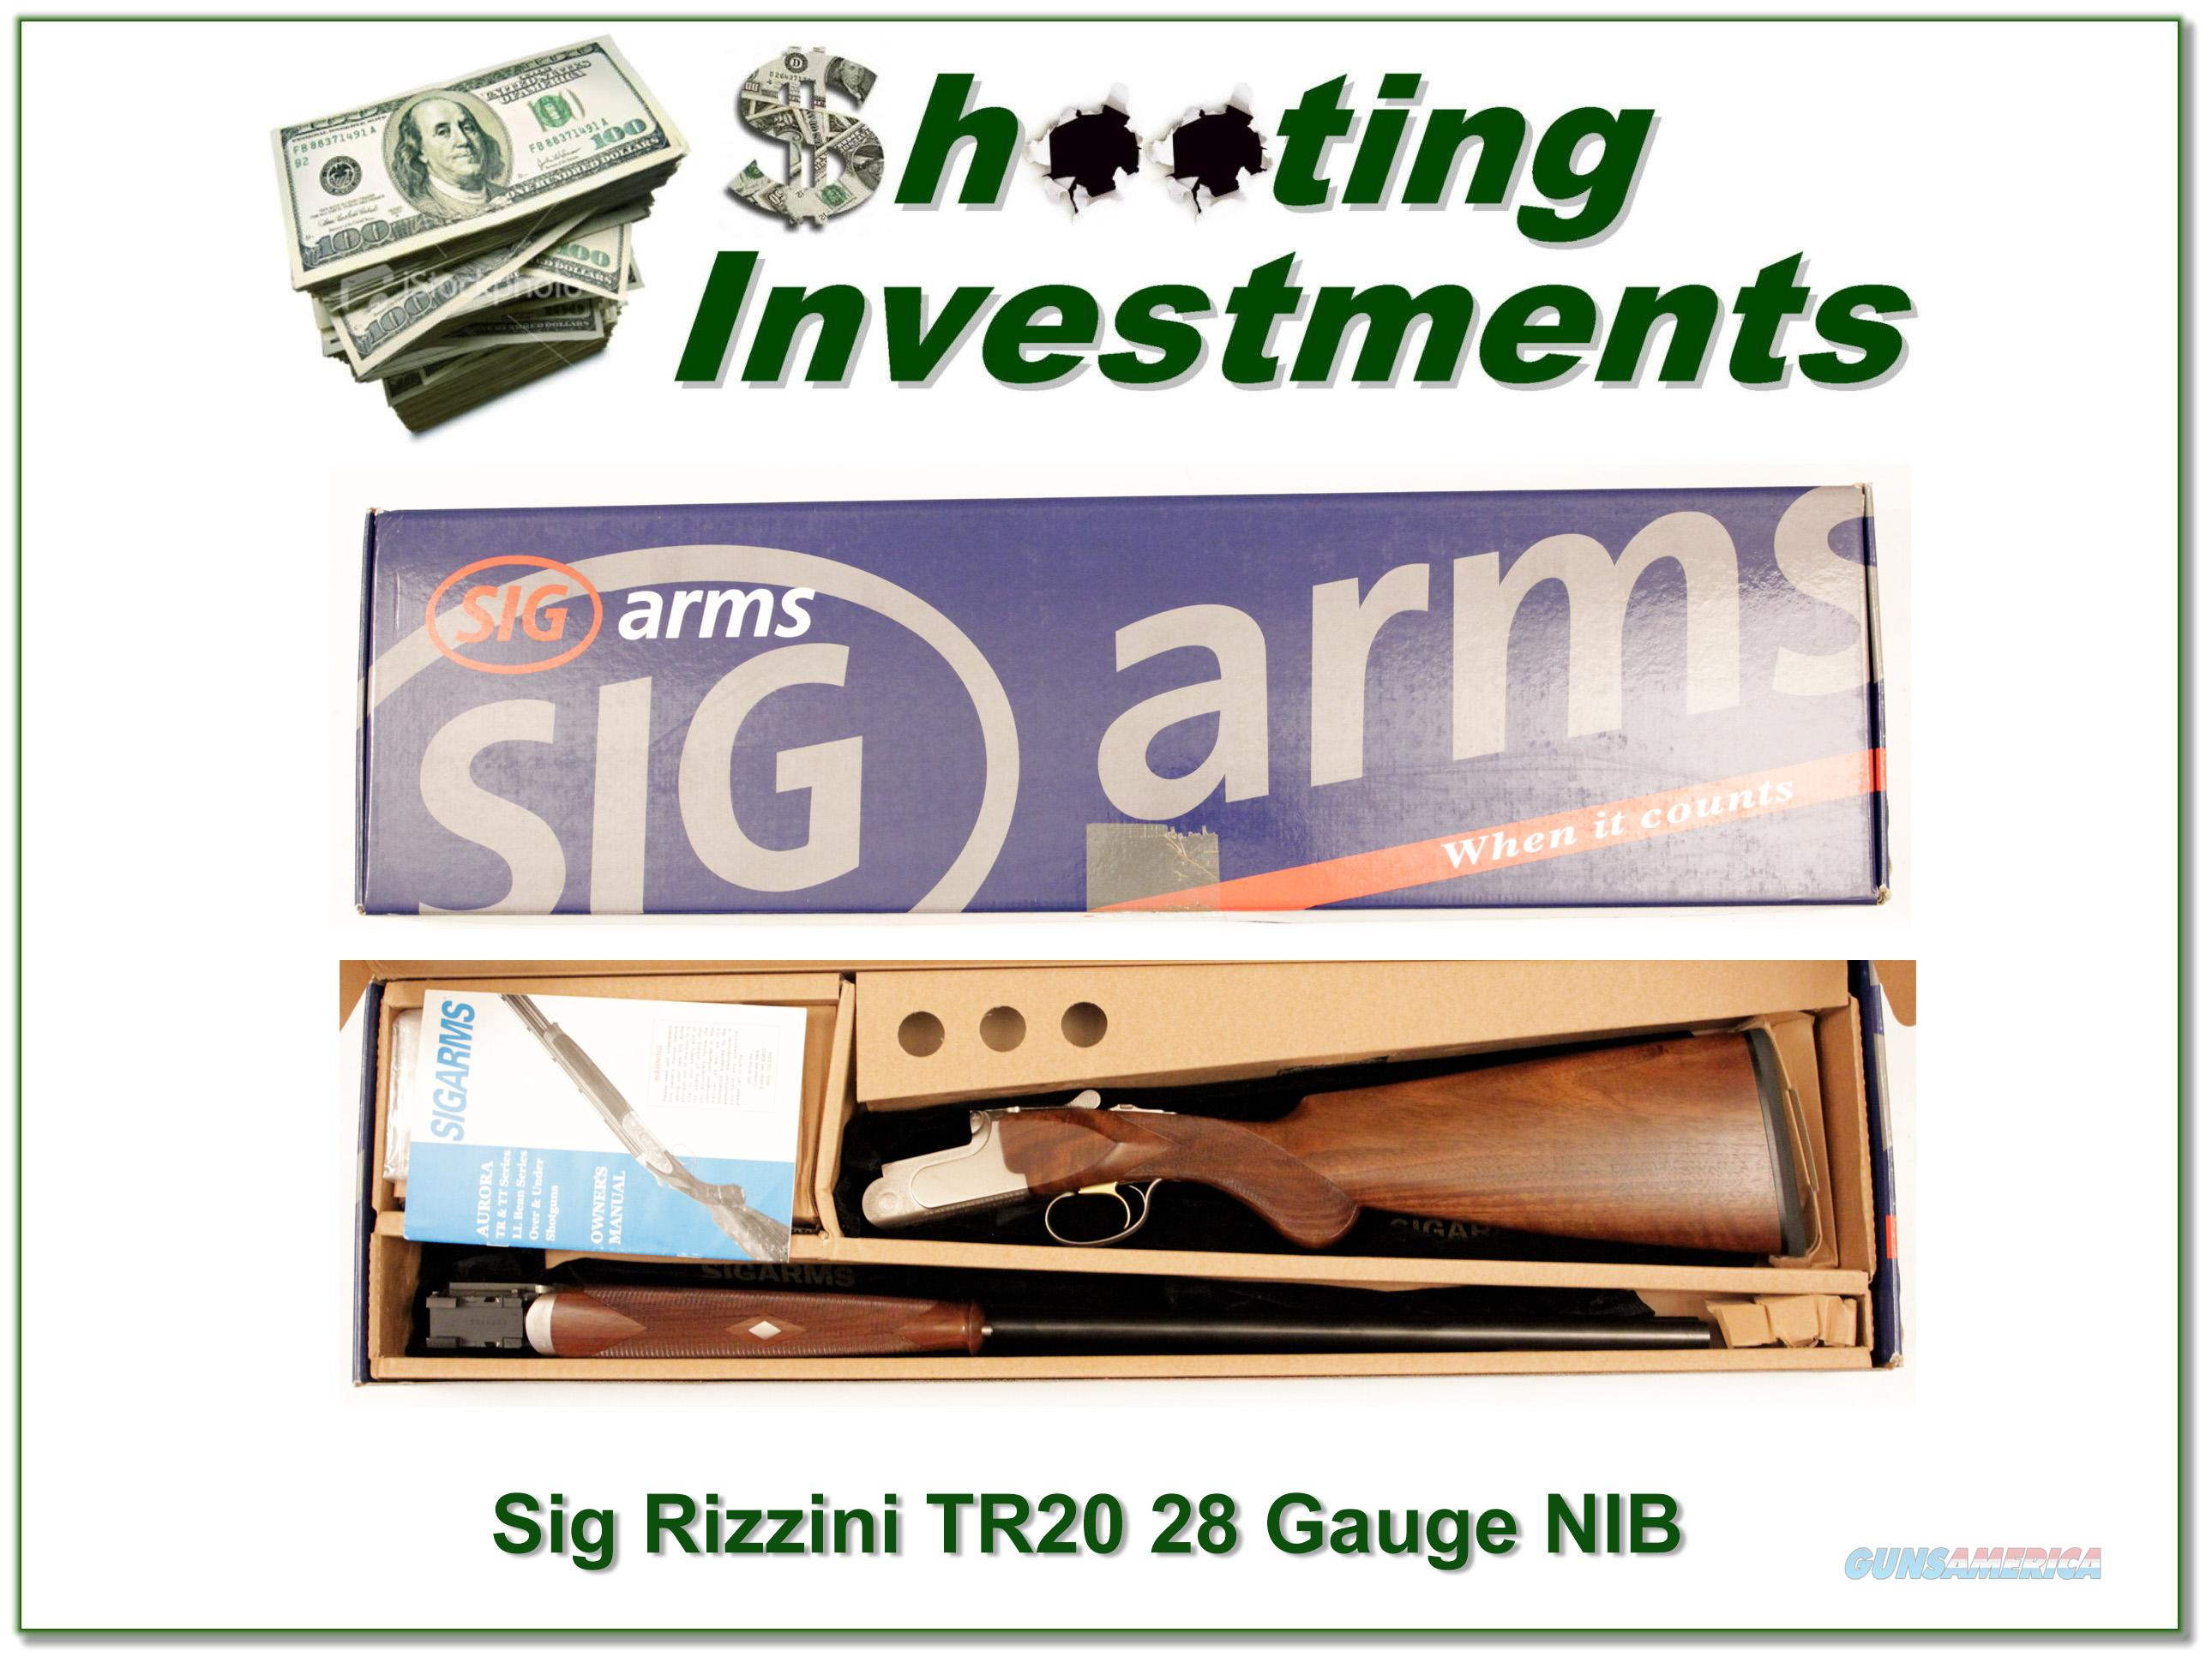 Sig Arms Rizzini TR20 28 Gauge NIB never fired   Guns > Shotguns > Sig - Sauer/Sigarms Shotguns